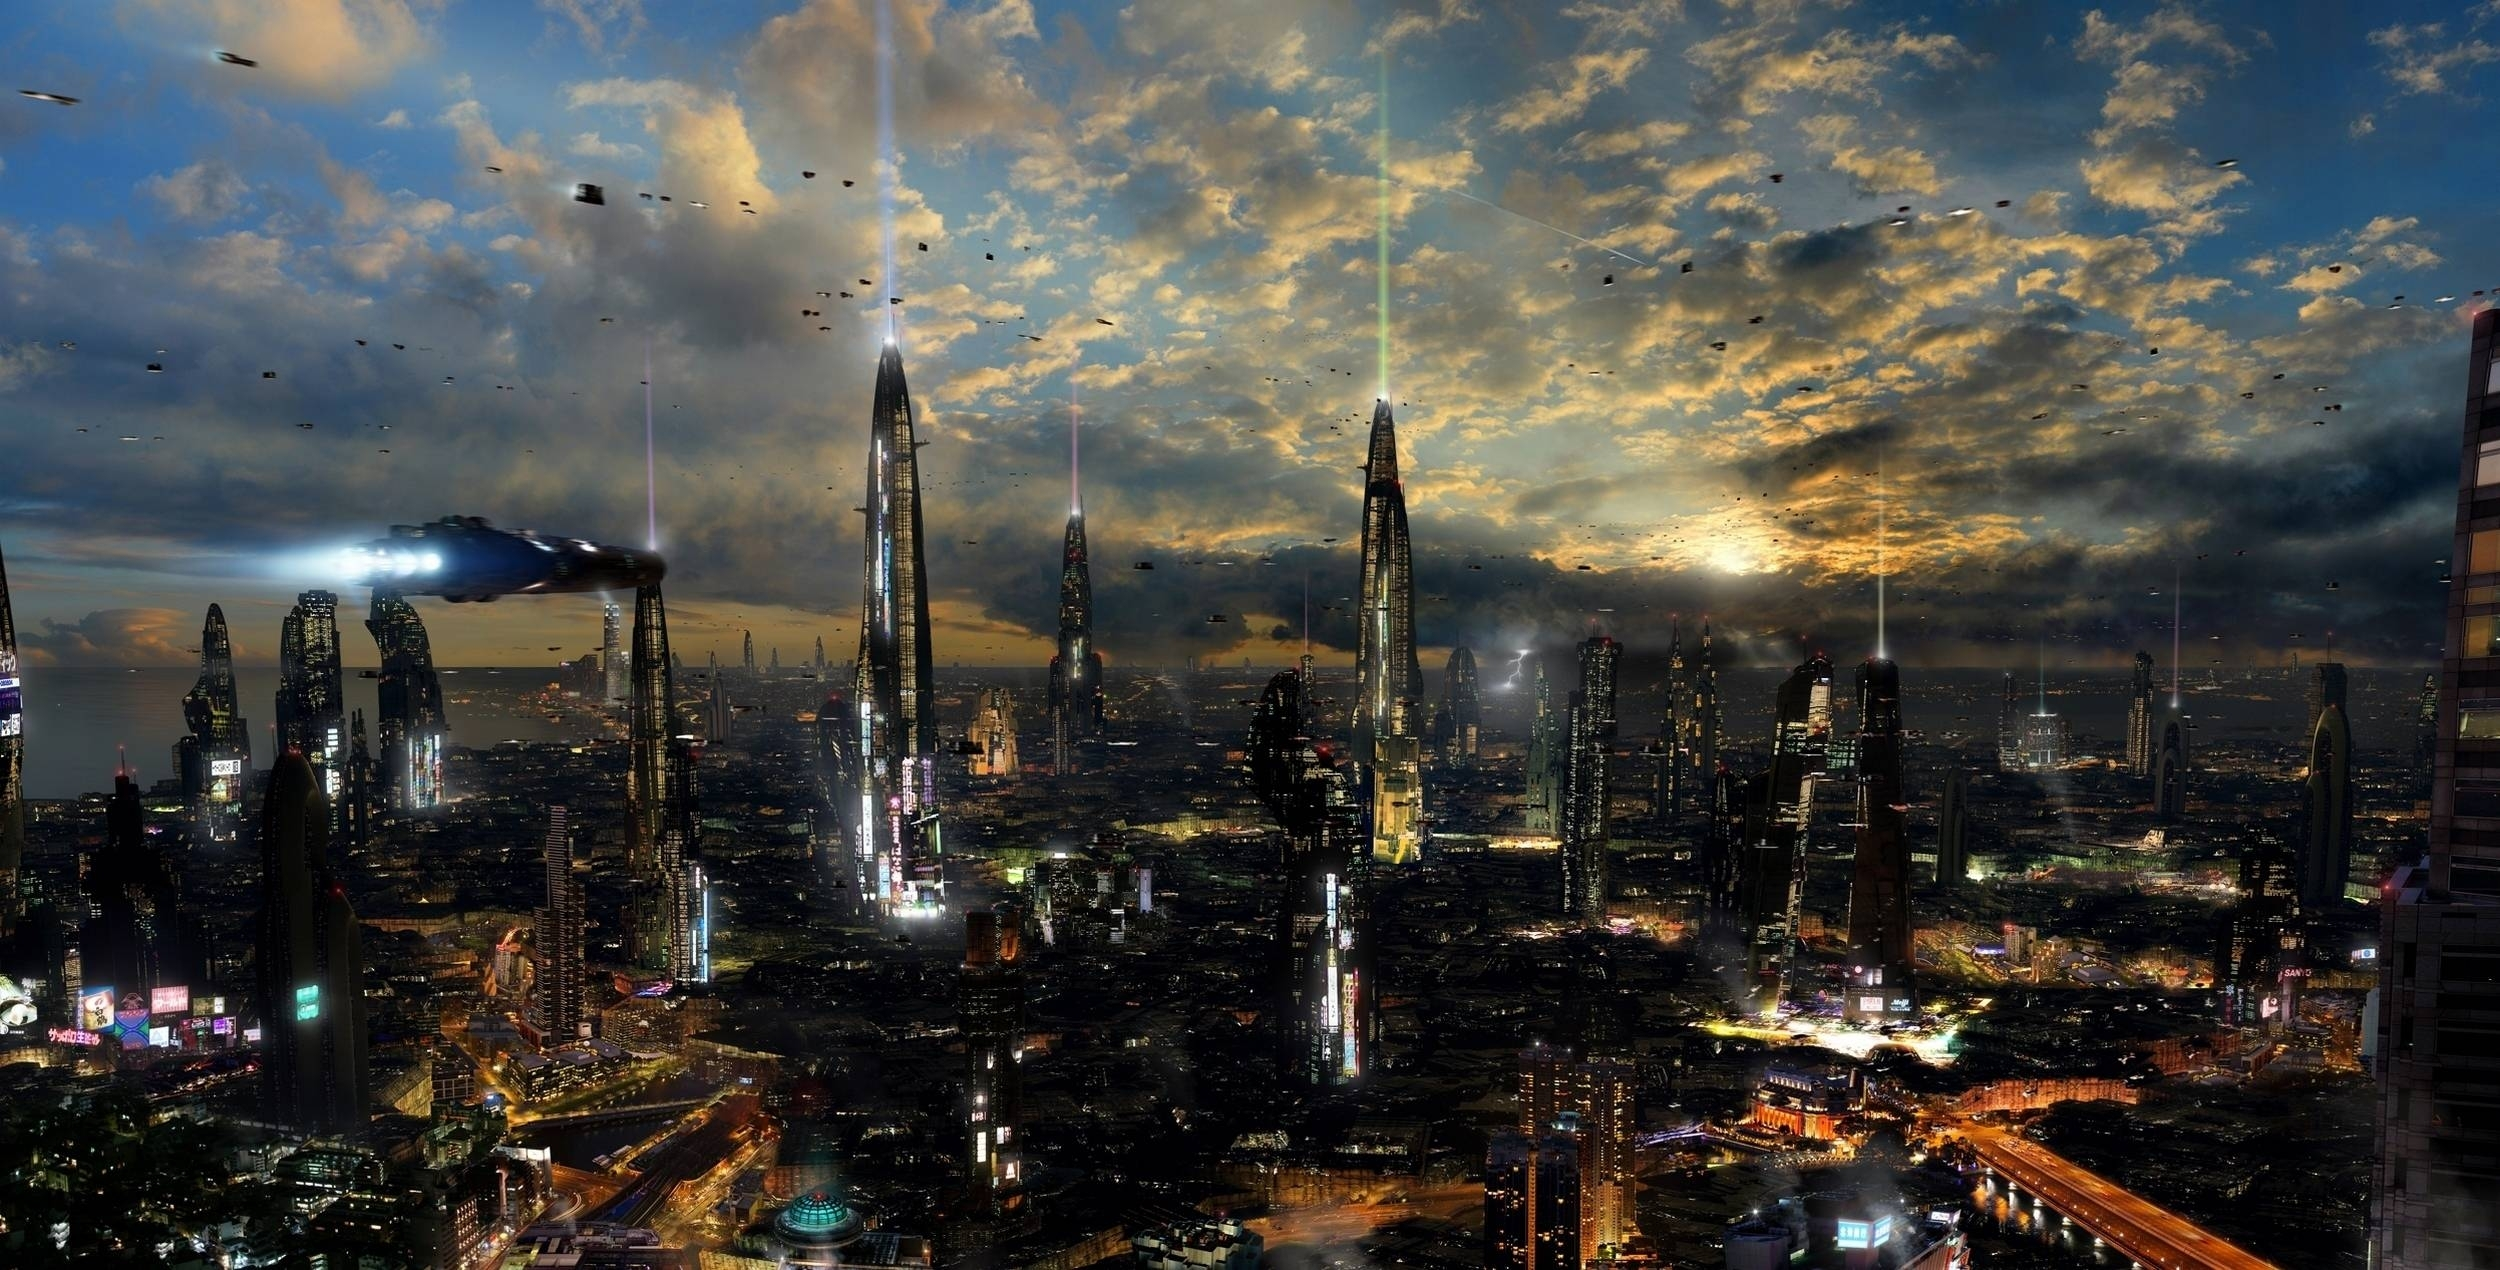 10 Top Futuristic City Hd Wallpaper FULL HD 1080p For PC Desktop